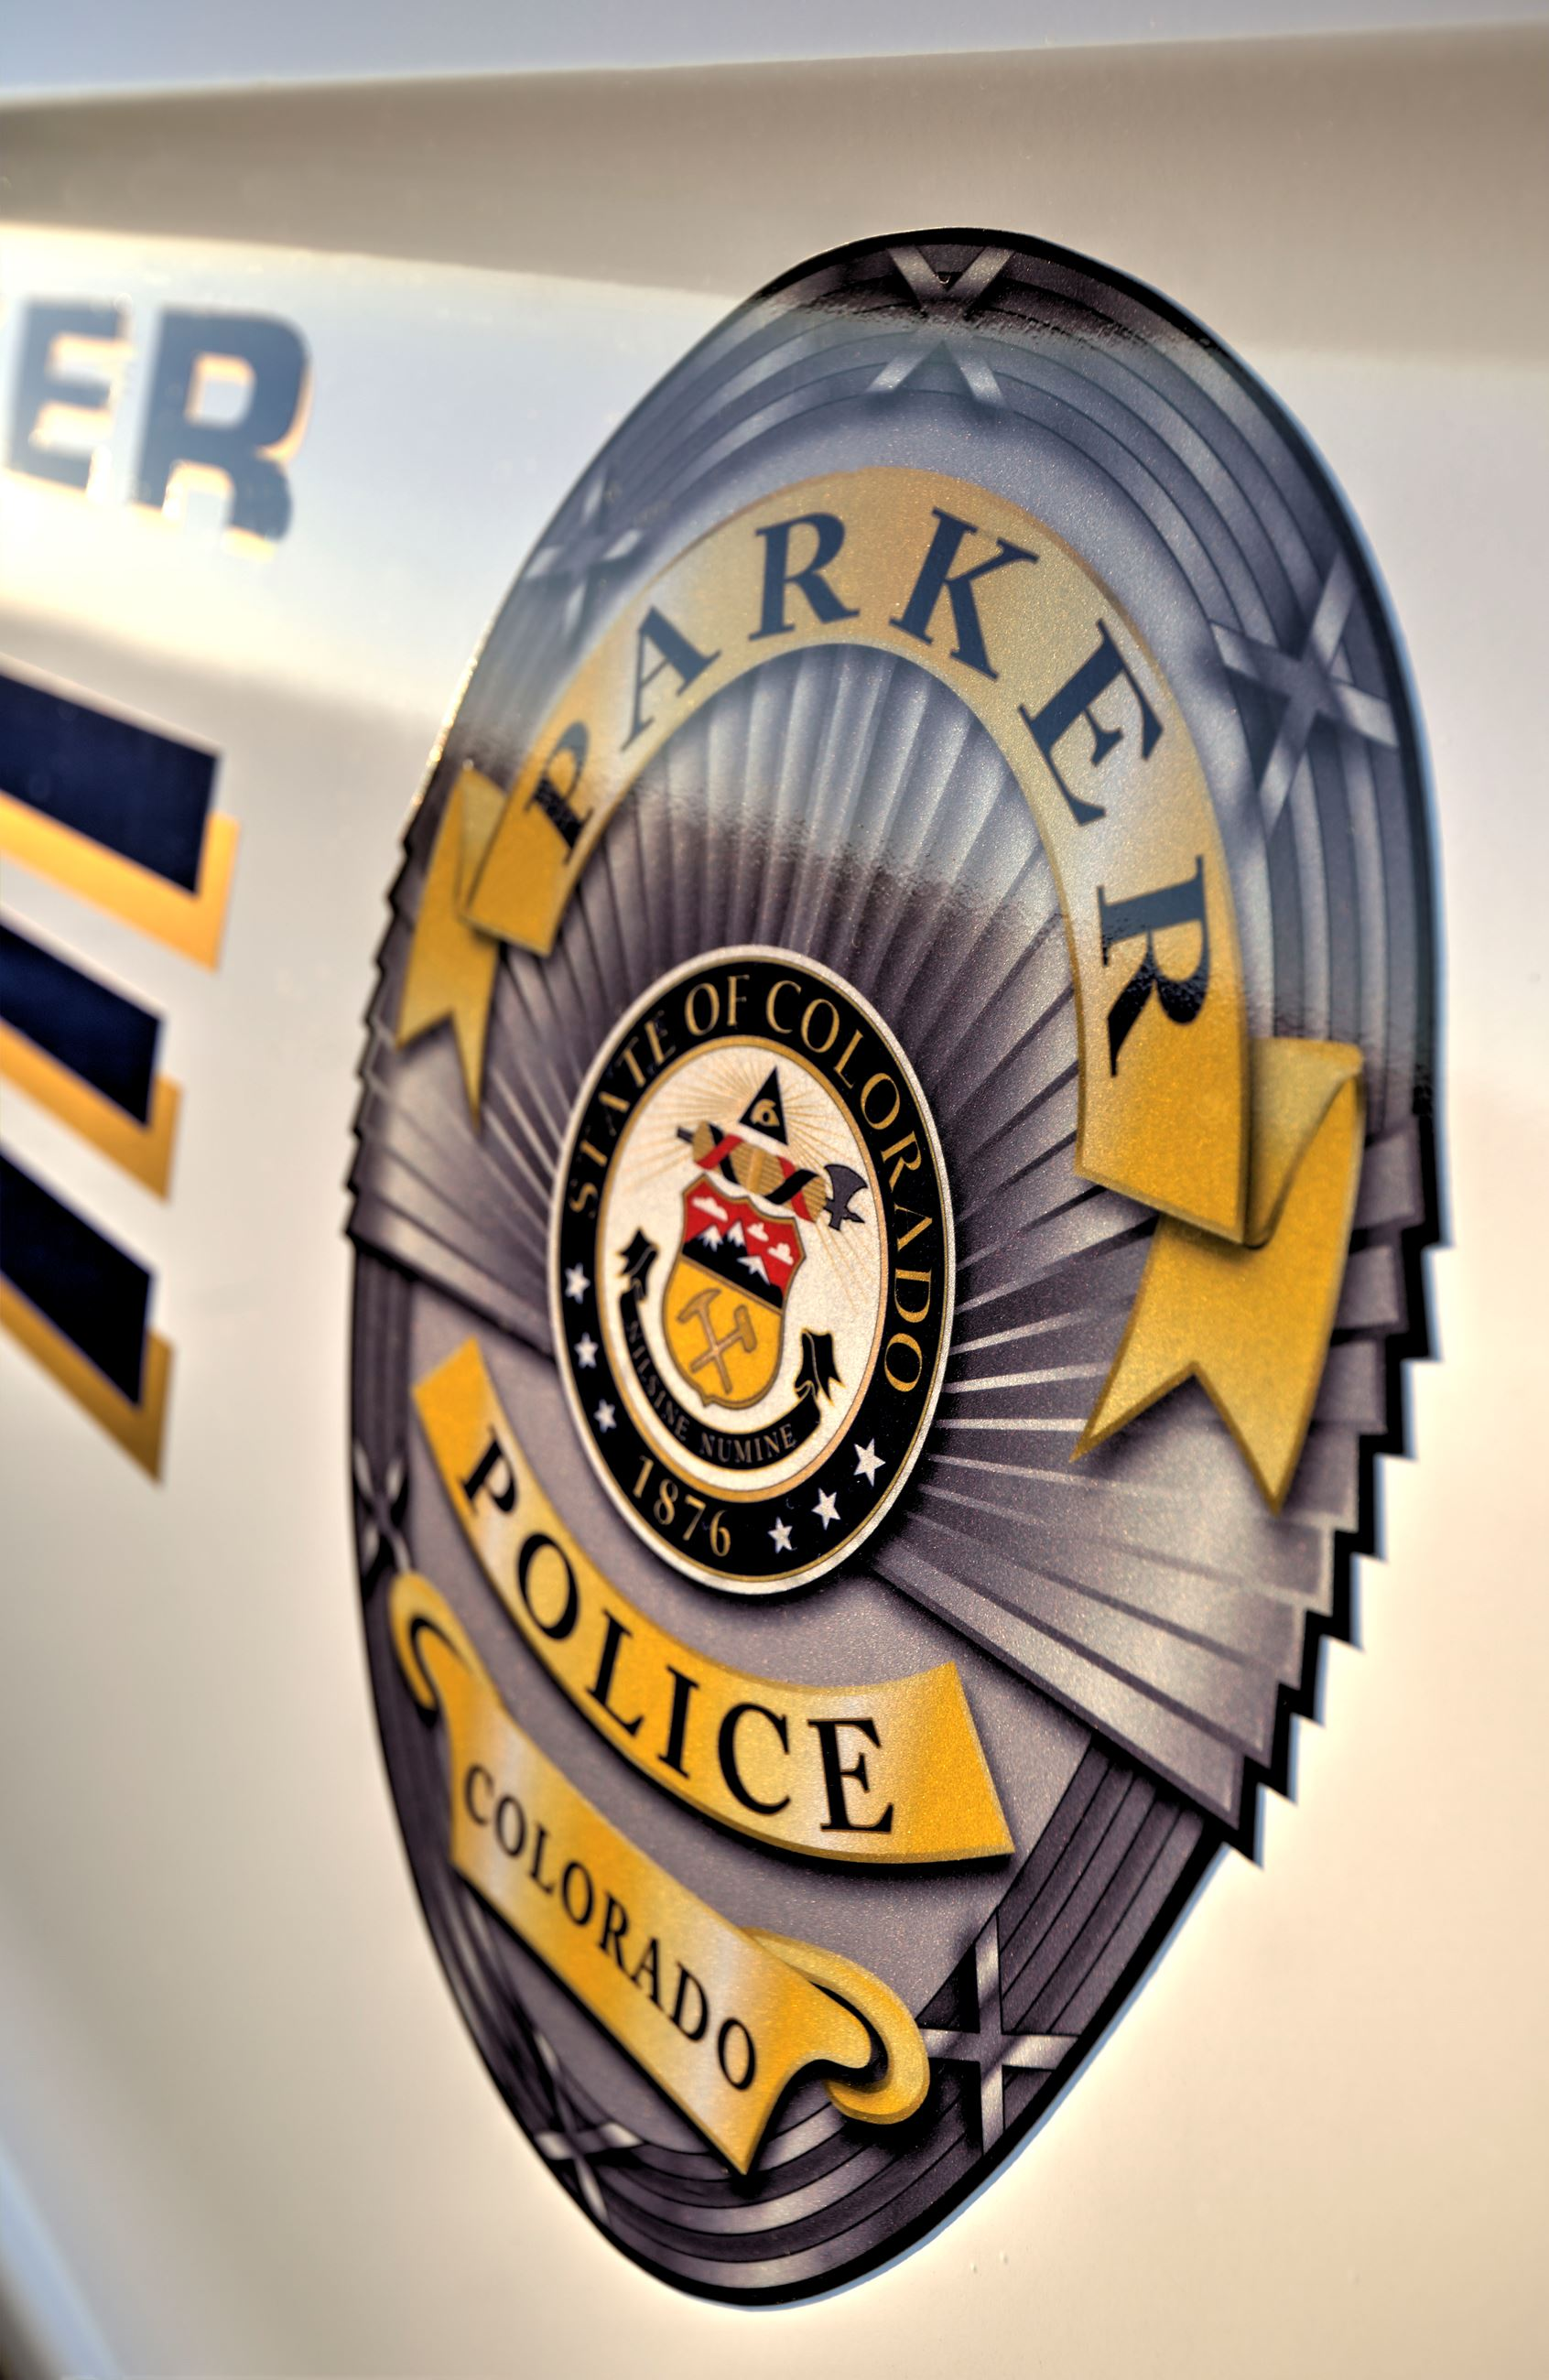 Parker Police Badge on the side of a police car